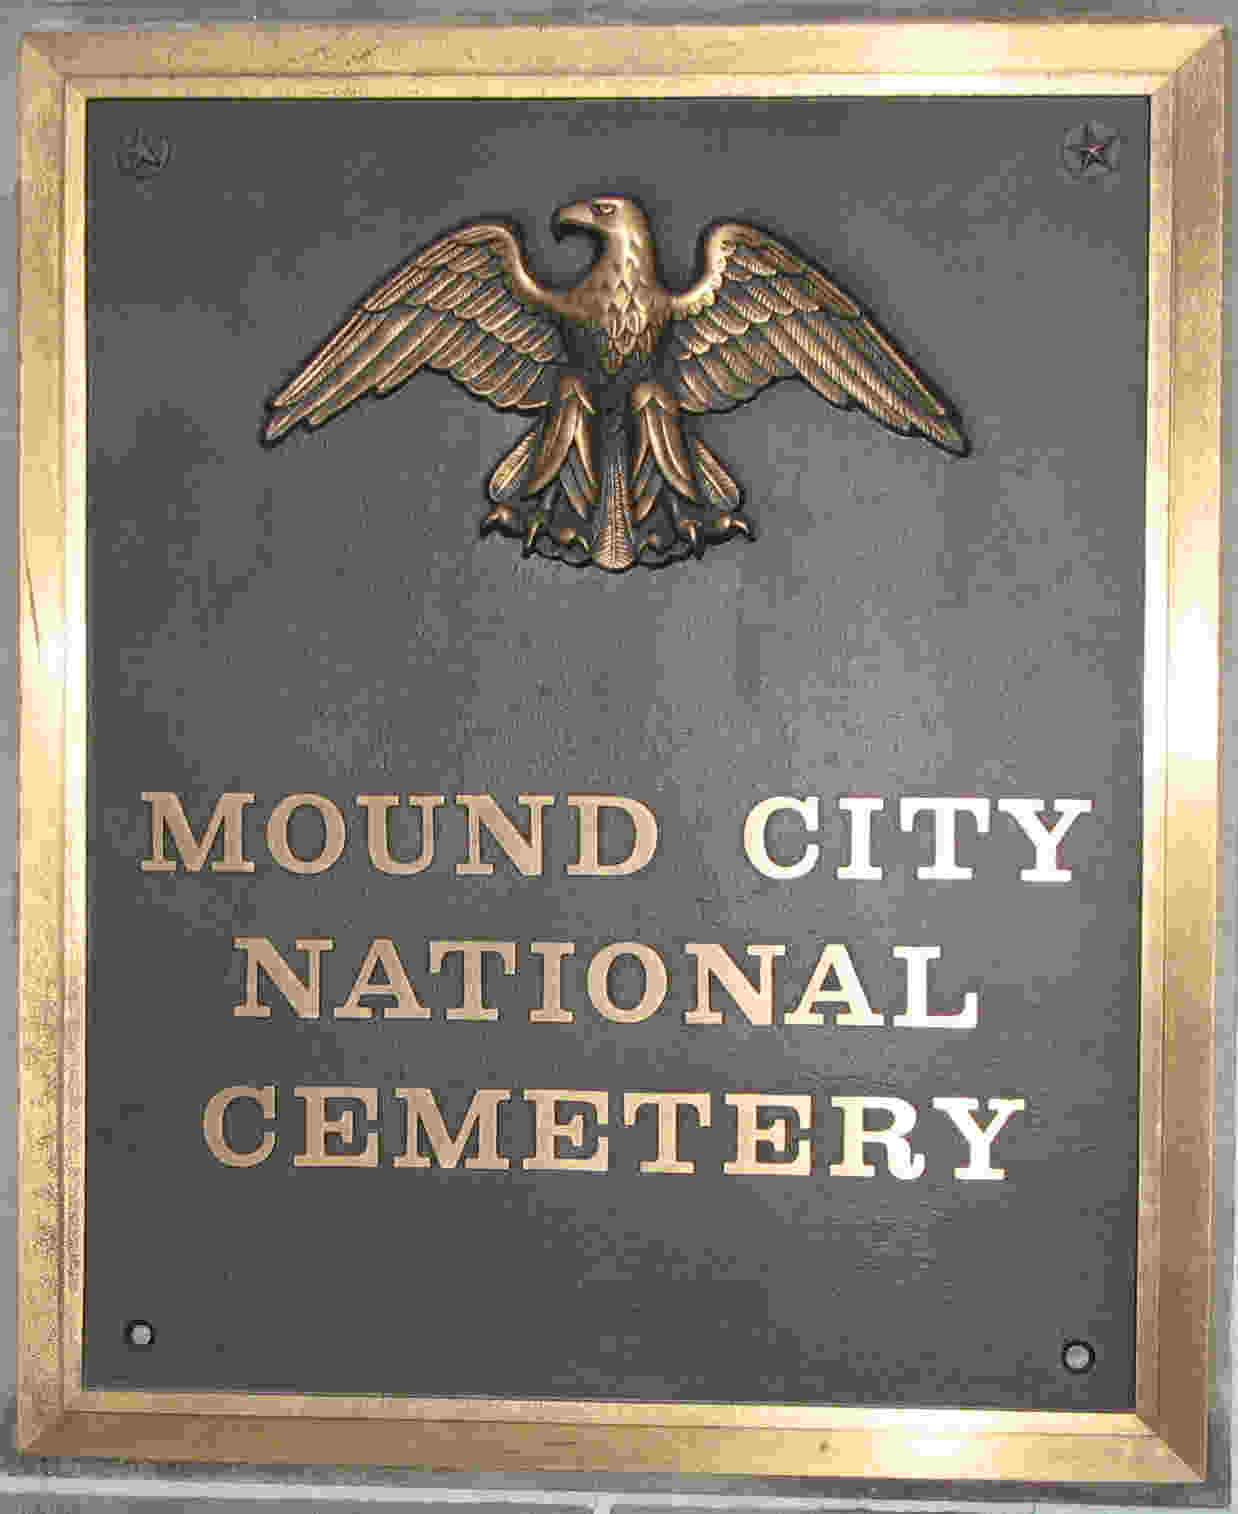 Mound City National Cemetery